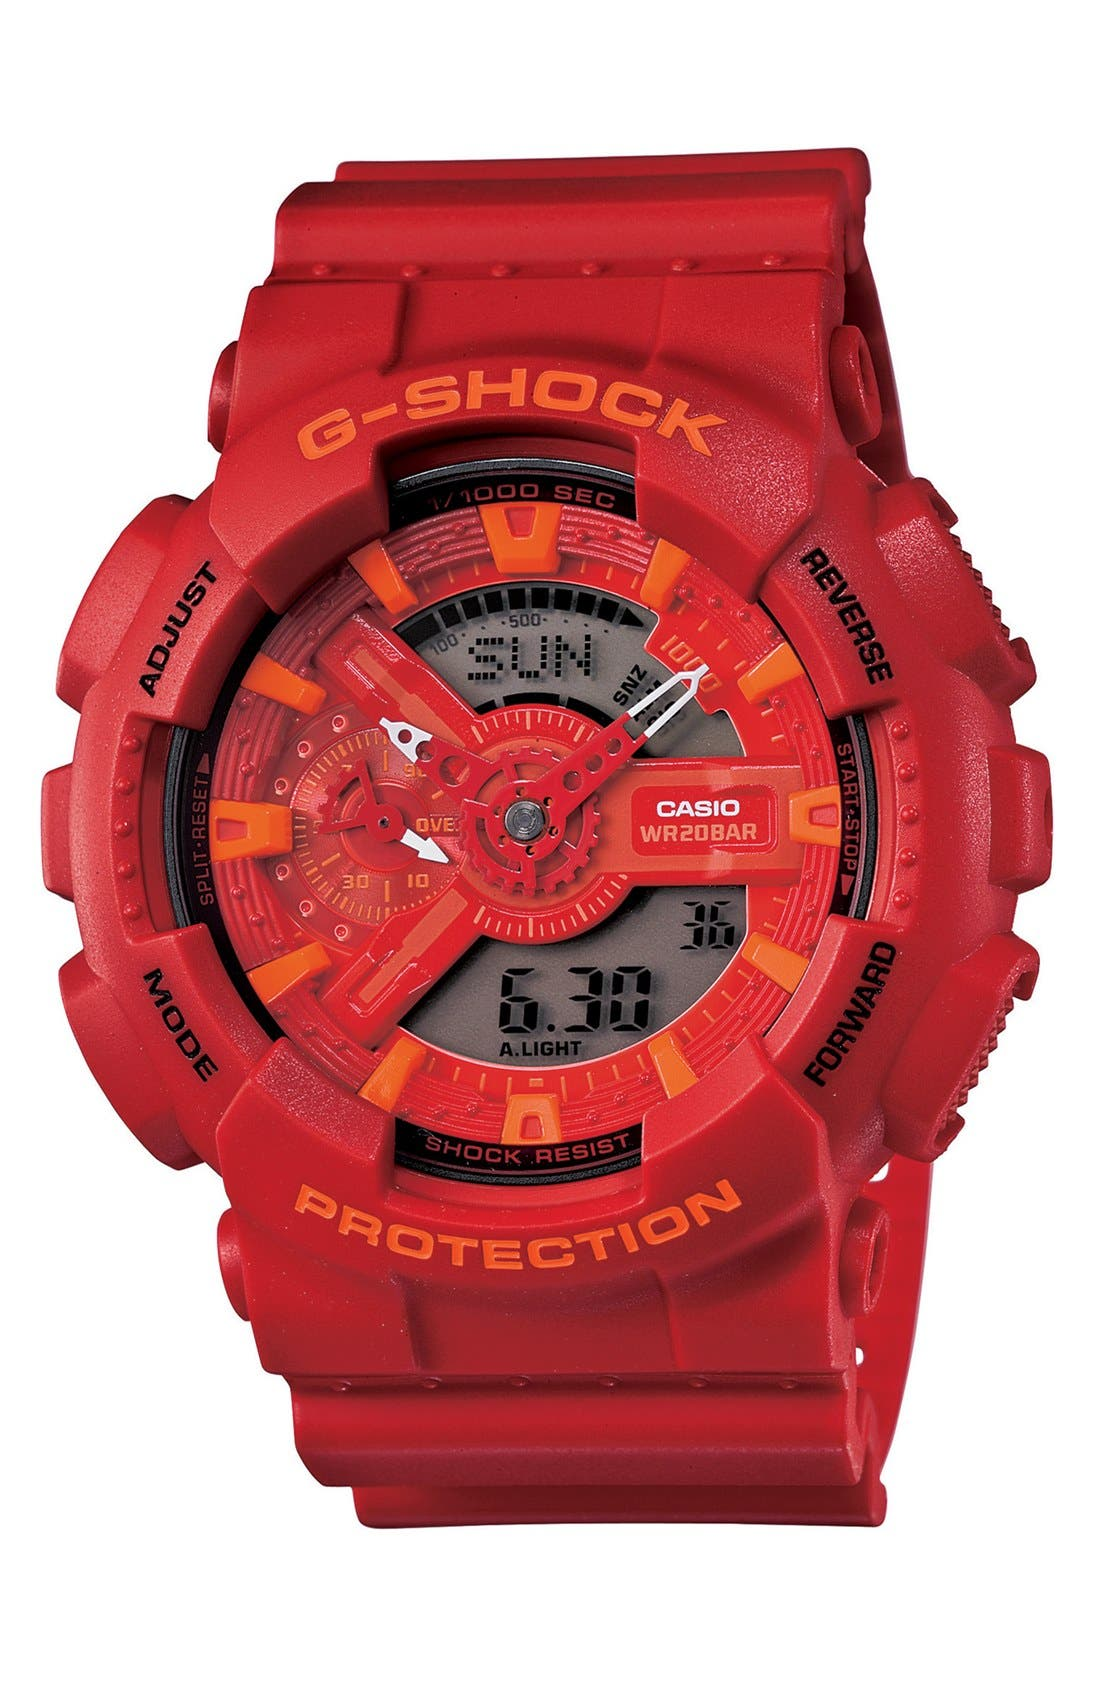 Alternate Image 1 Selected - G-Shock 'X-Large Big Combi' Watch, 55mm x 51mm